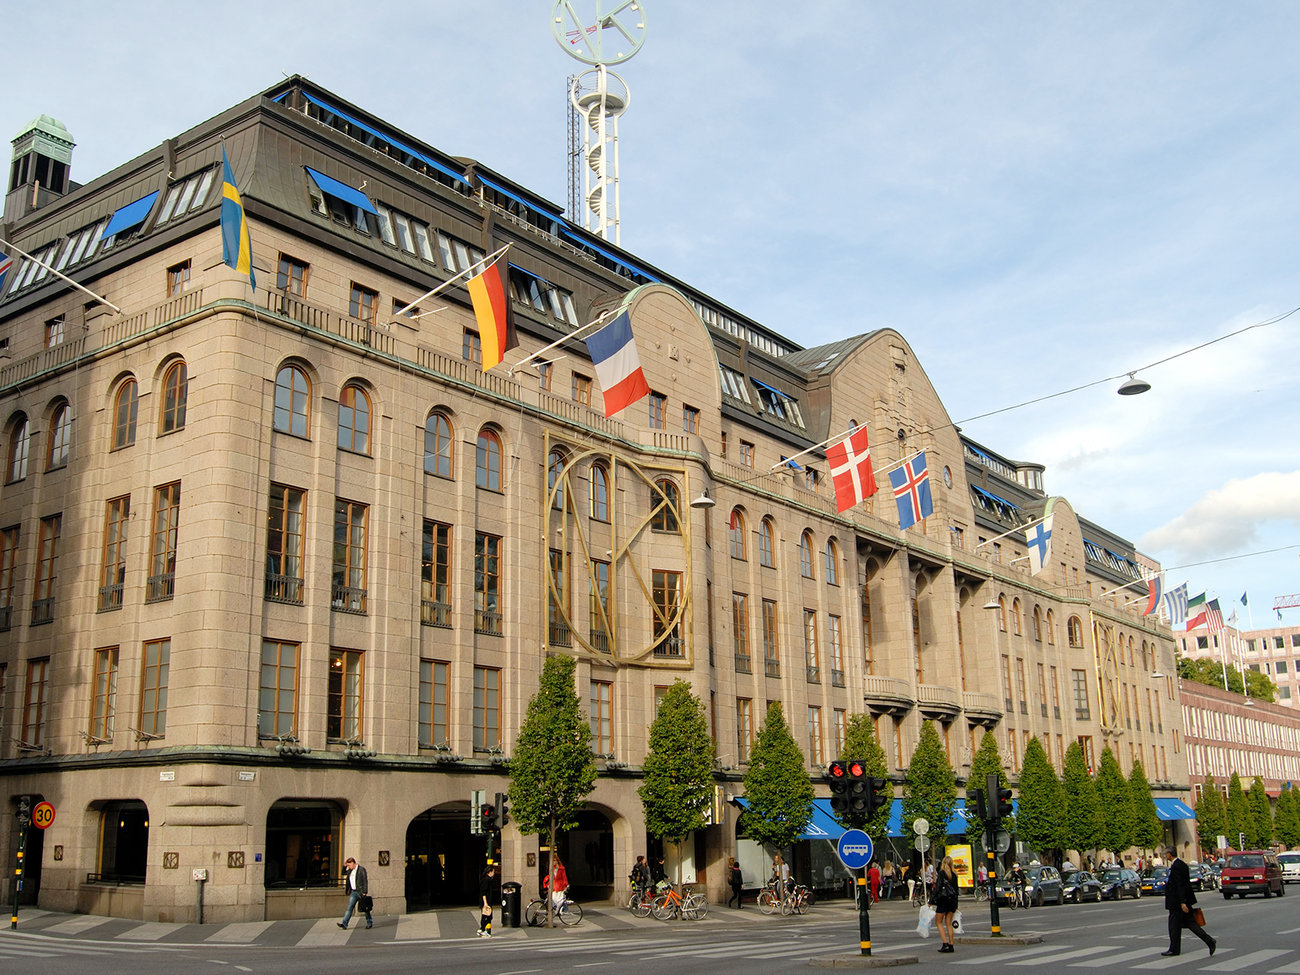 NK Department Store in Stockholm